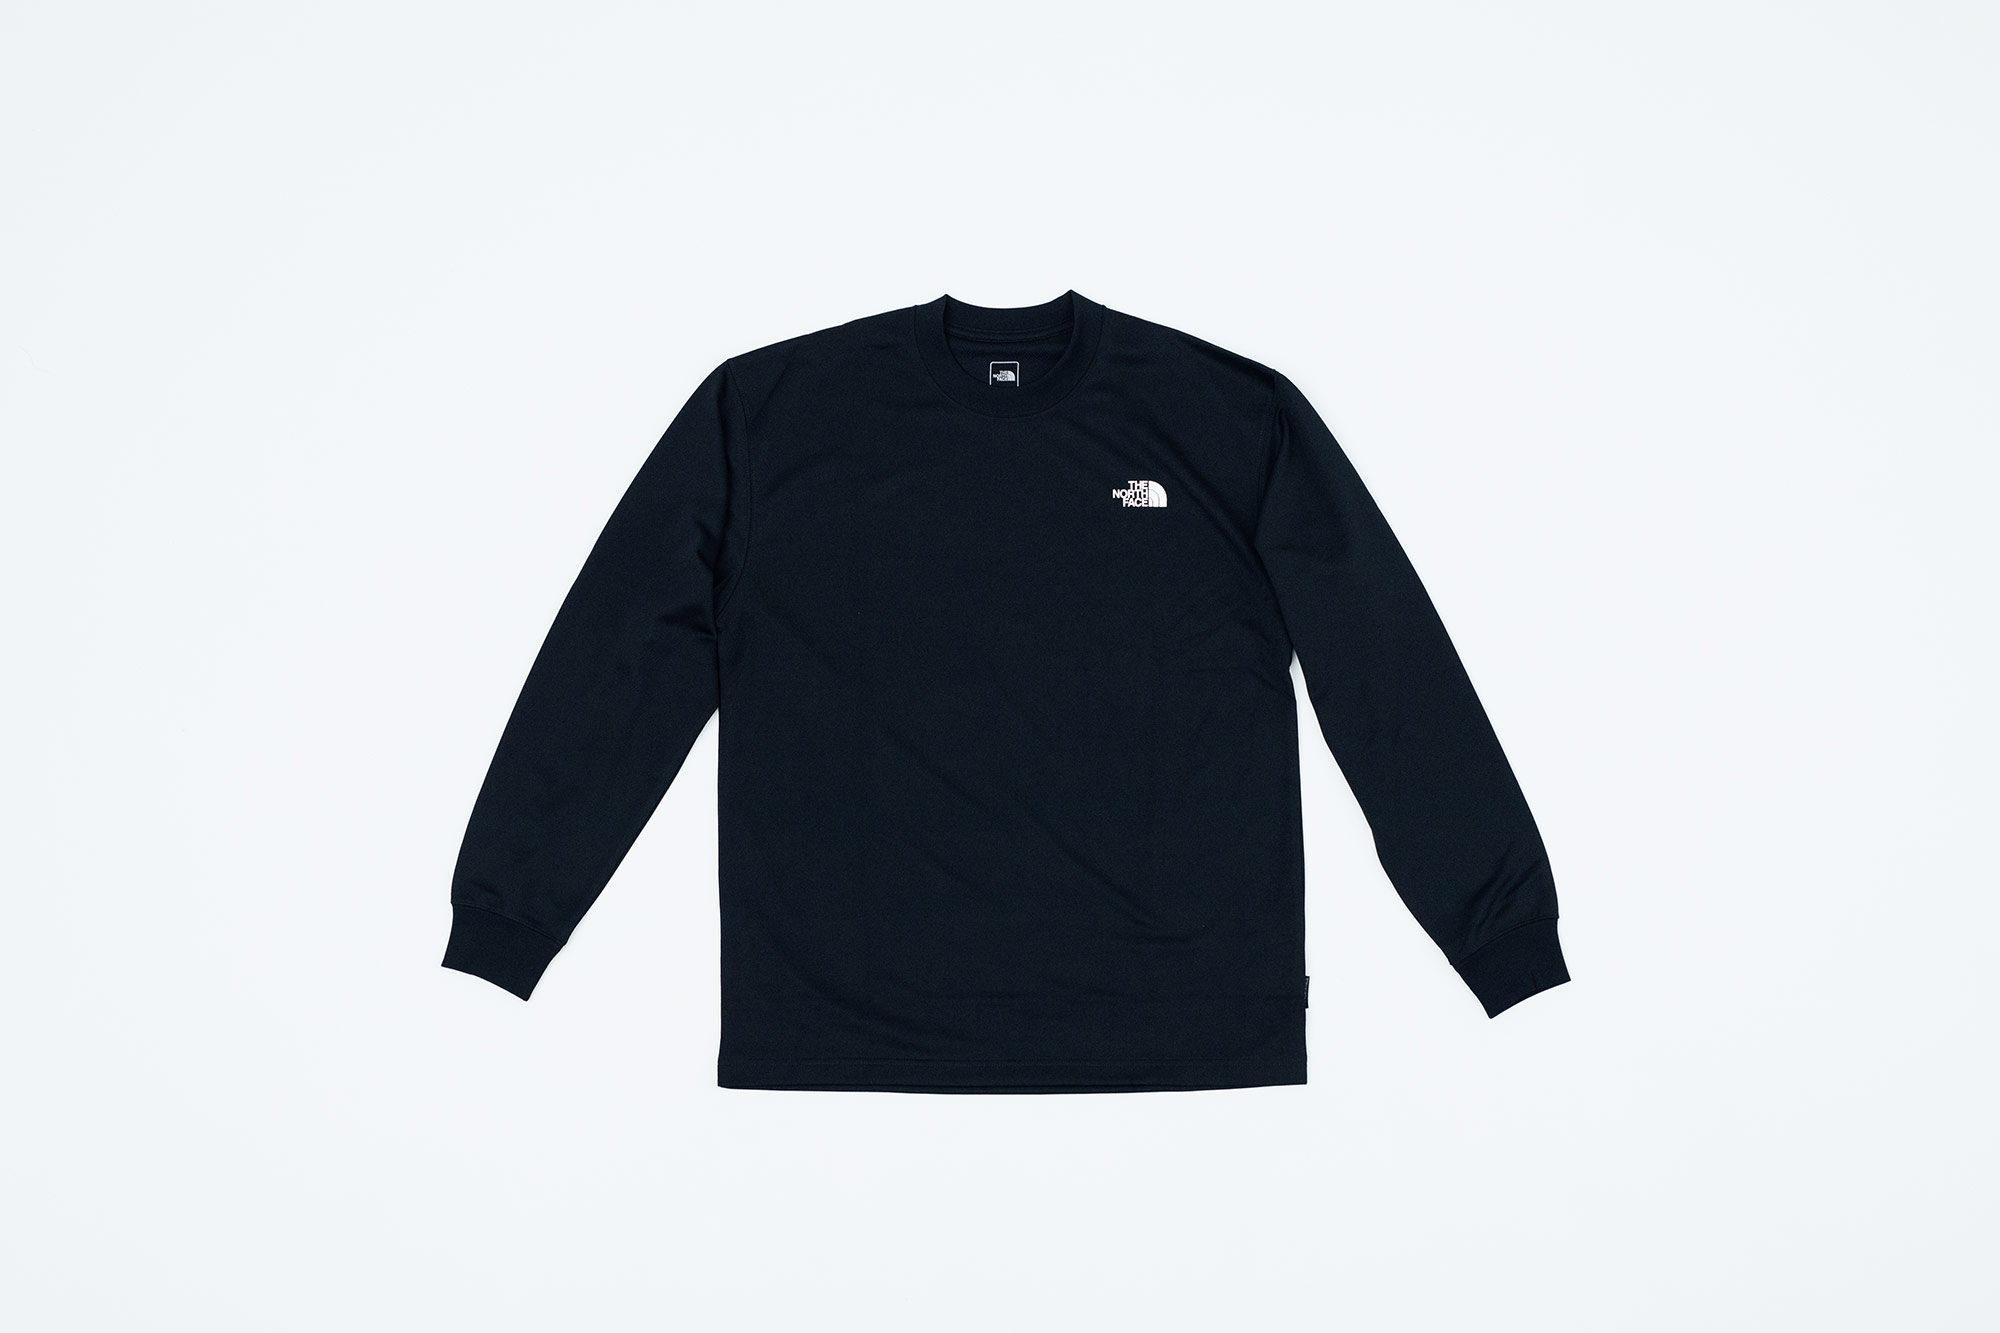 THE NORTH FACE ロングスリーブ エアー ベントT(メンズ)